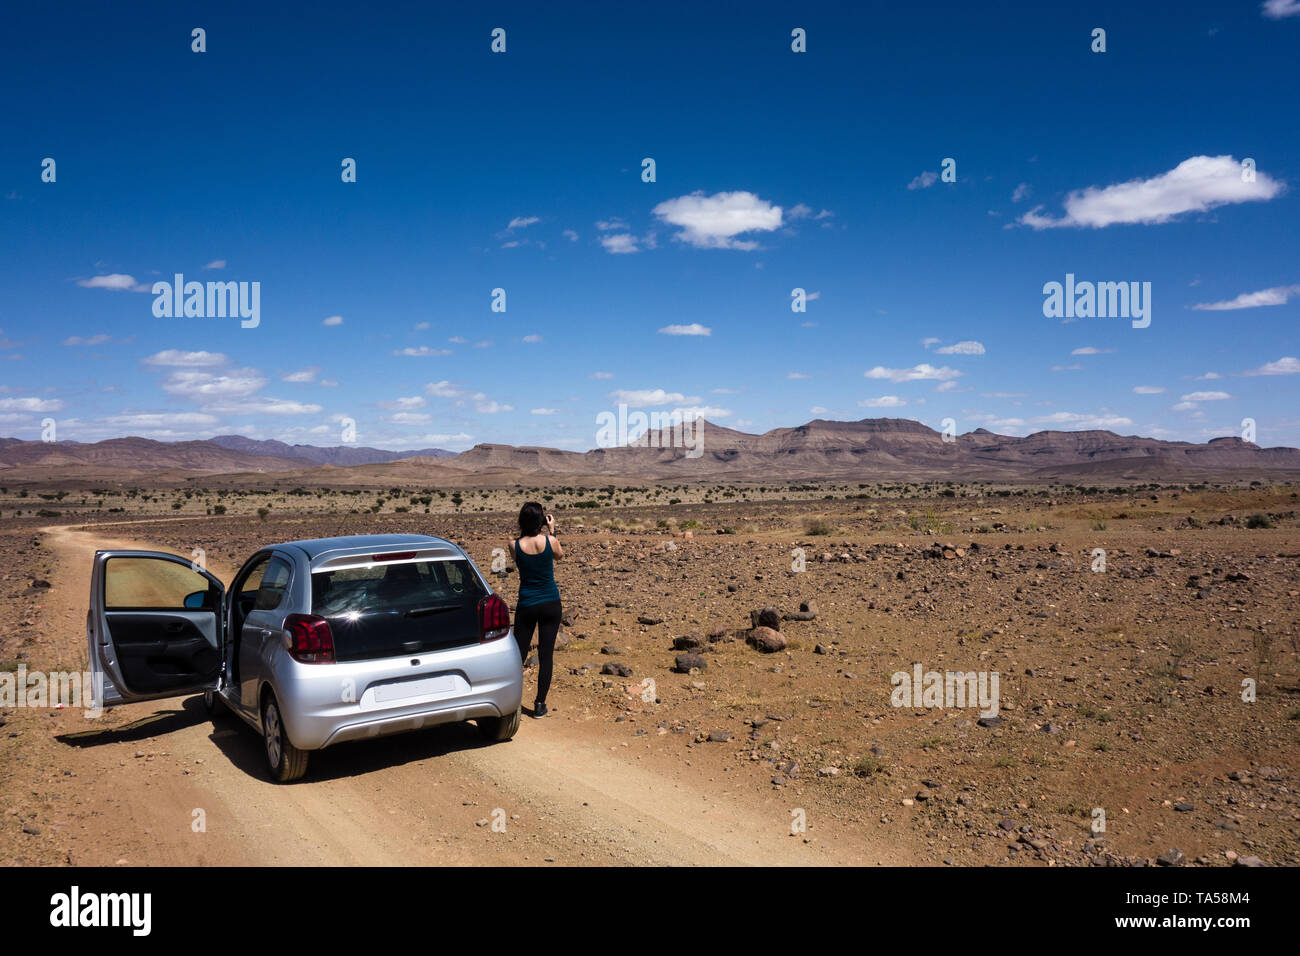 Young female tourist photographing on a dirt road with some rocky desert landscape on a road-trip from Marrakesh to Merzouga, Morocco Stock Photo